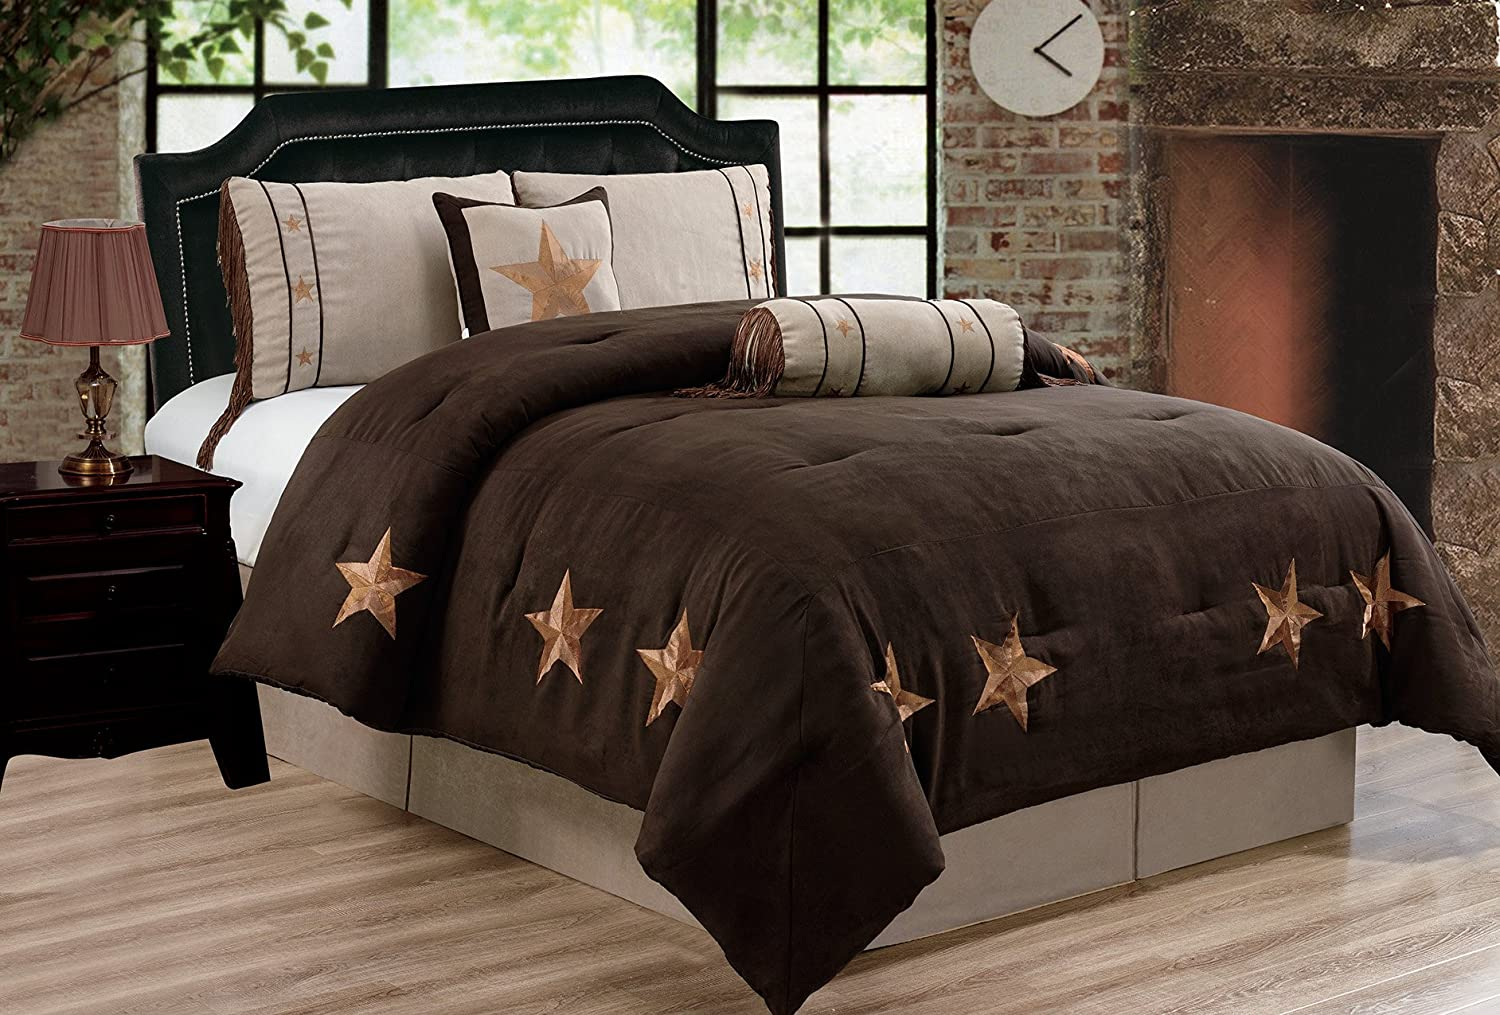 "Grand Linen 6 Piece Chocolate Brown/Taupe/Camel Oversize Lodge Cabin King Size (106""X 92"") Comforter Set Micro Suede Texas Lone Star Rustic Western Decor Bedding"